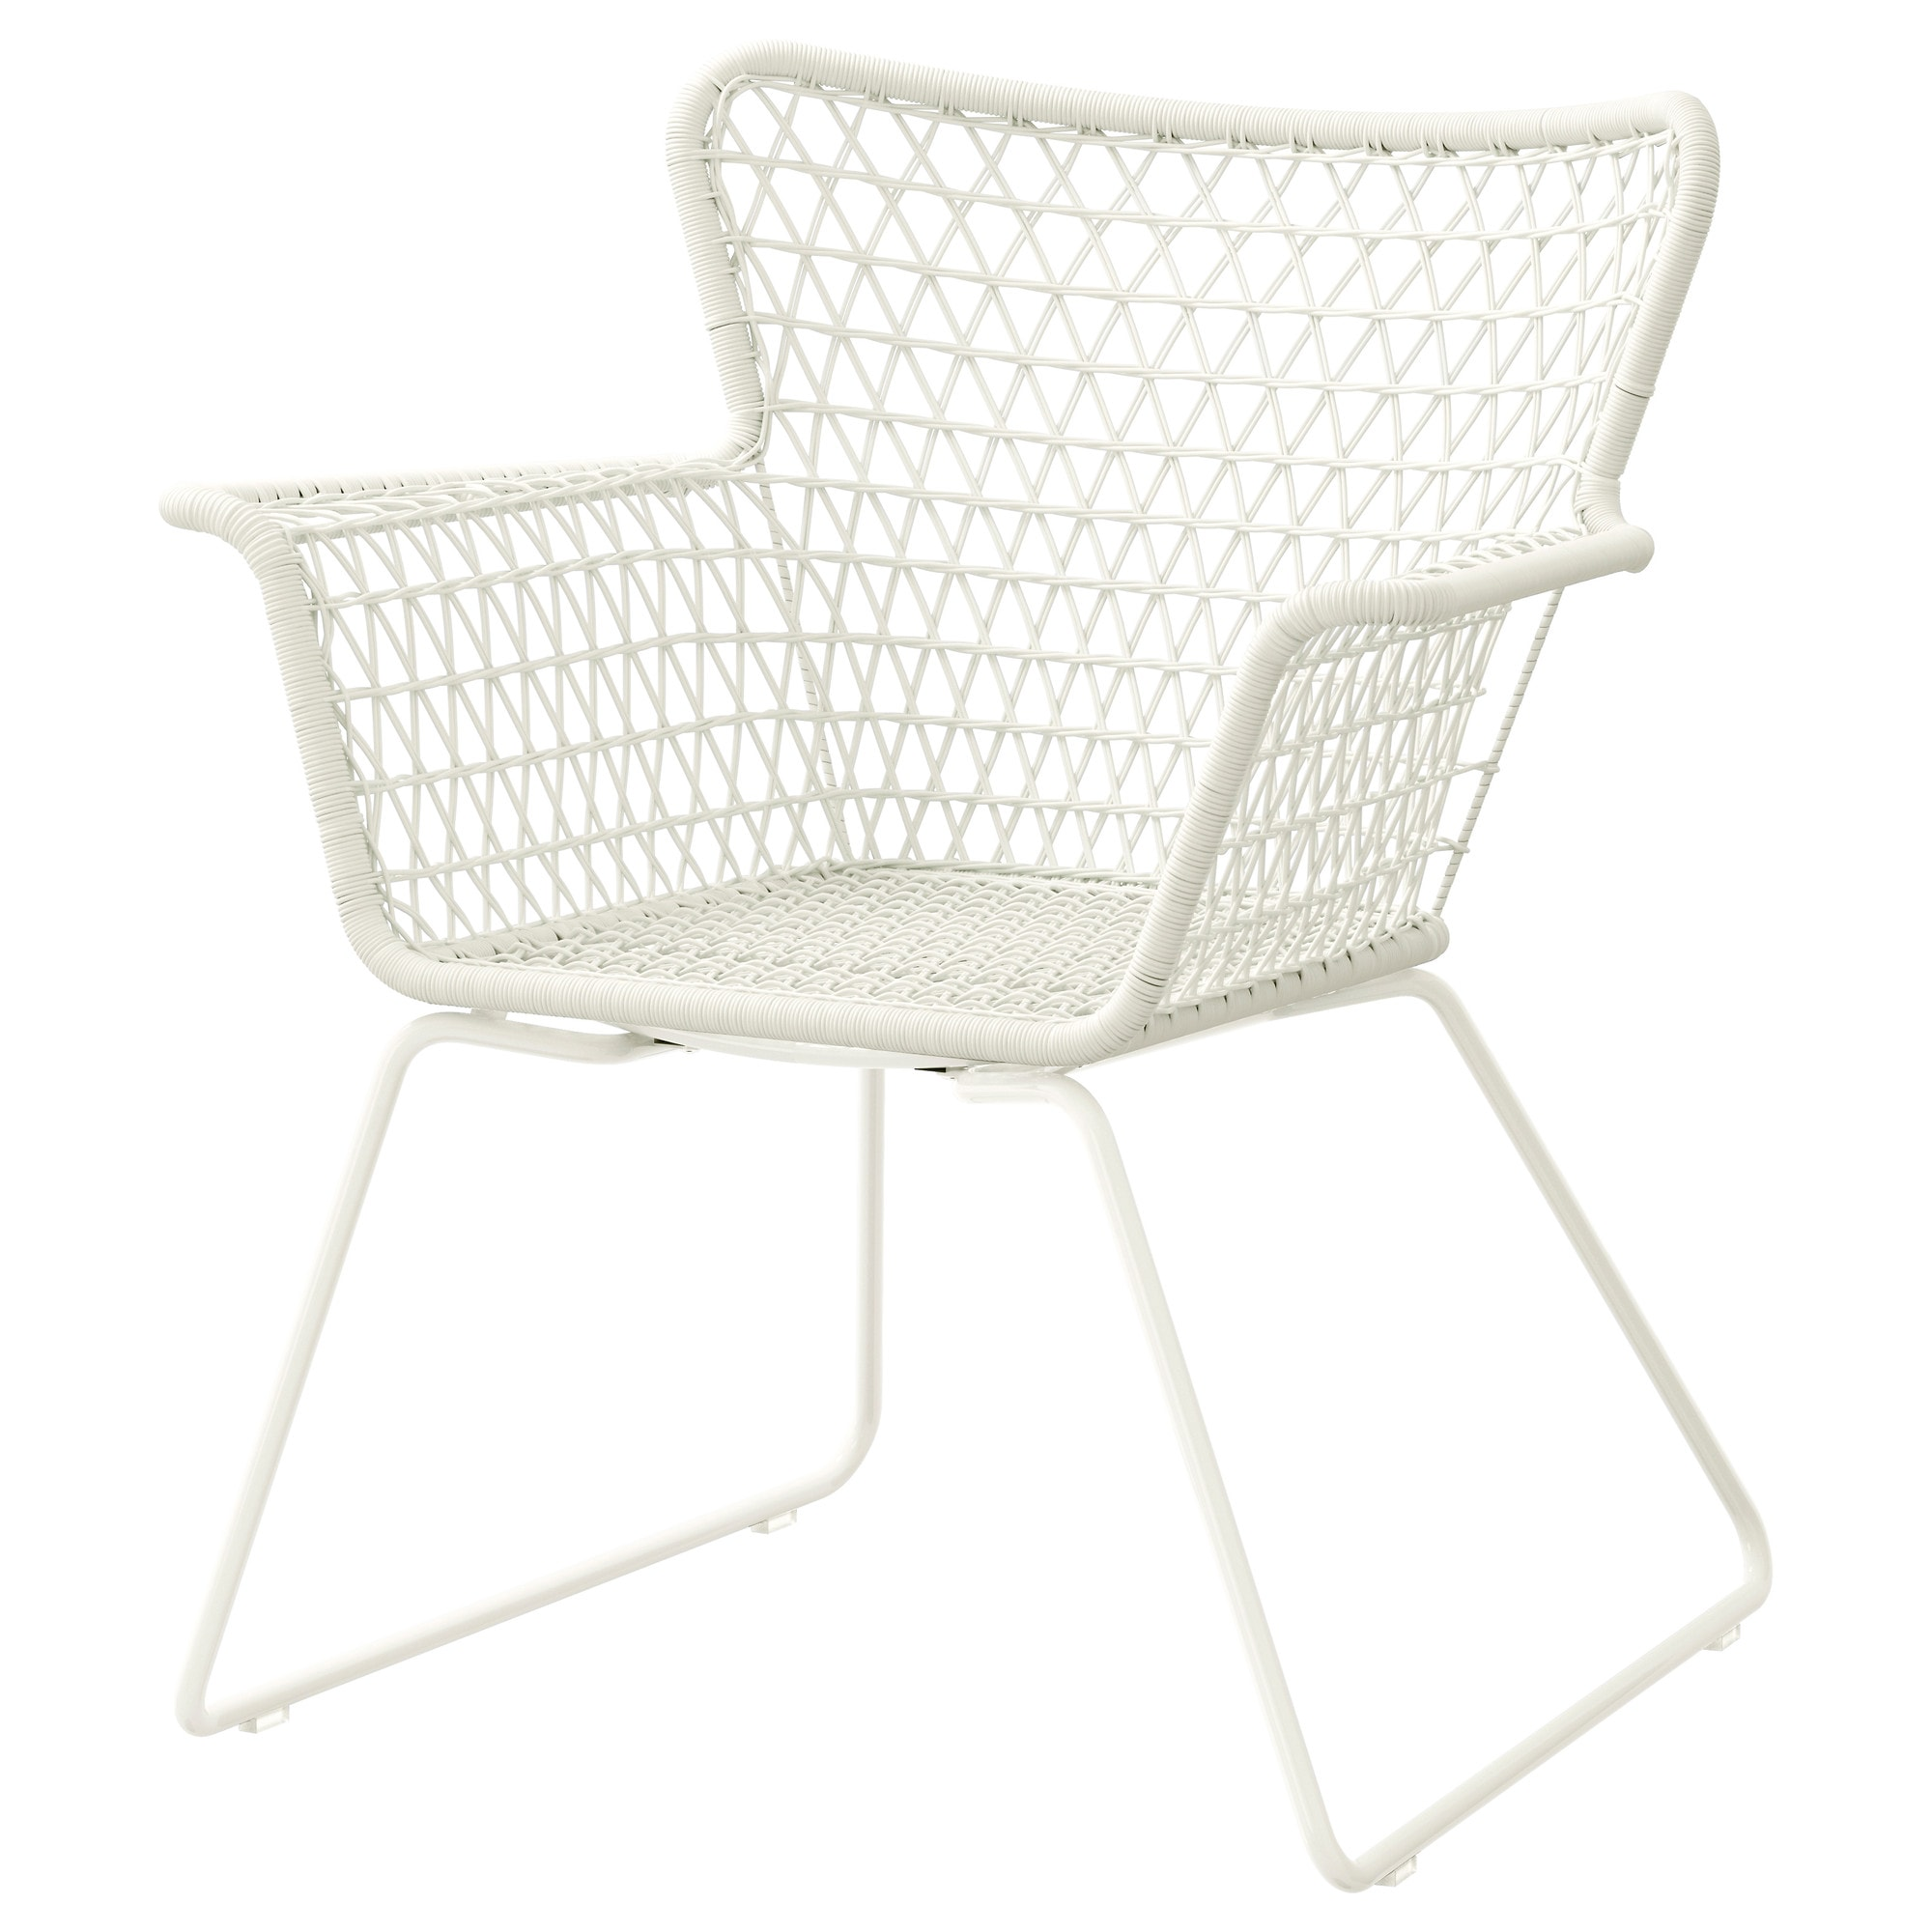 HÖGSTEN Chair With Armrests, Outdoor, White Width: 73 Cm Depth: 65 Cm